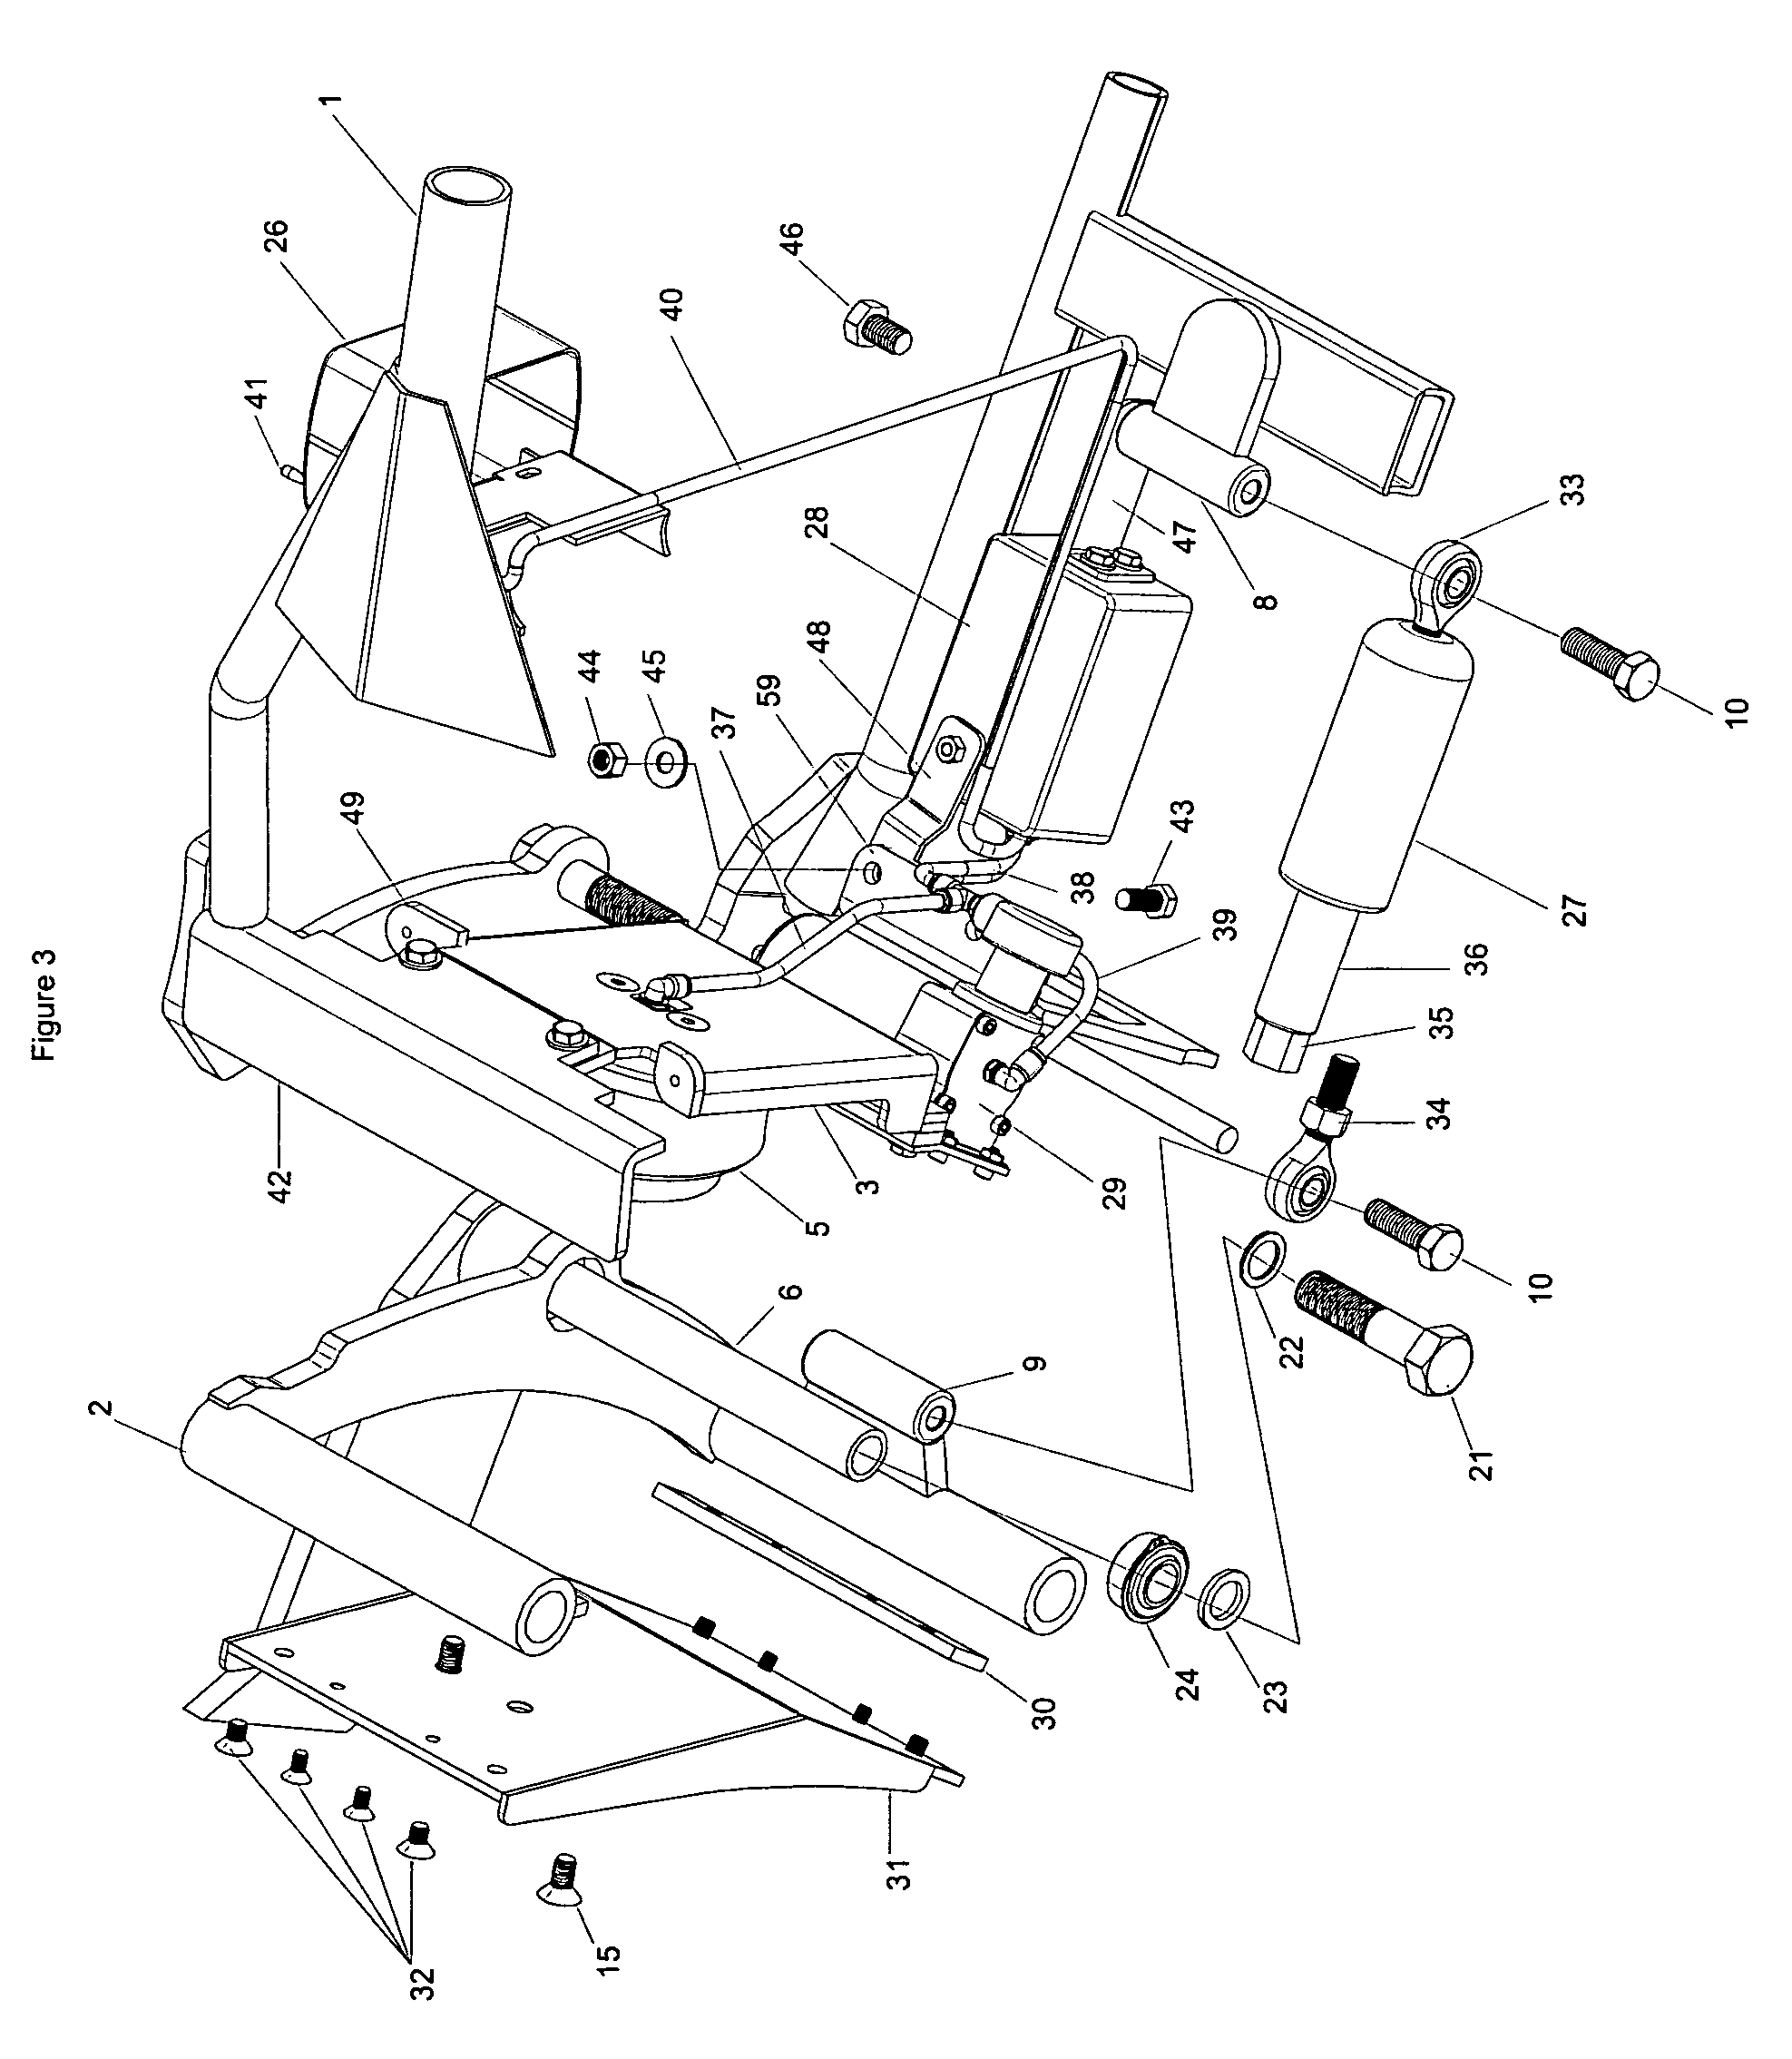 patent us8403092 - motorcycle suspension system